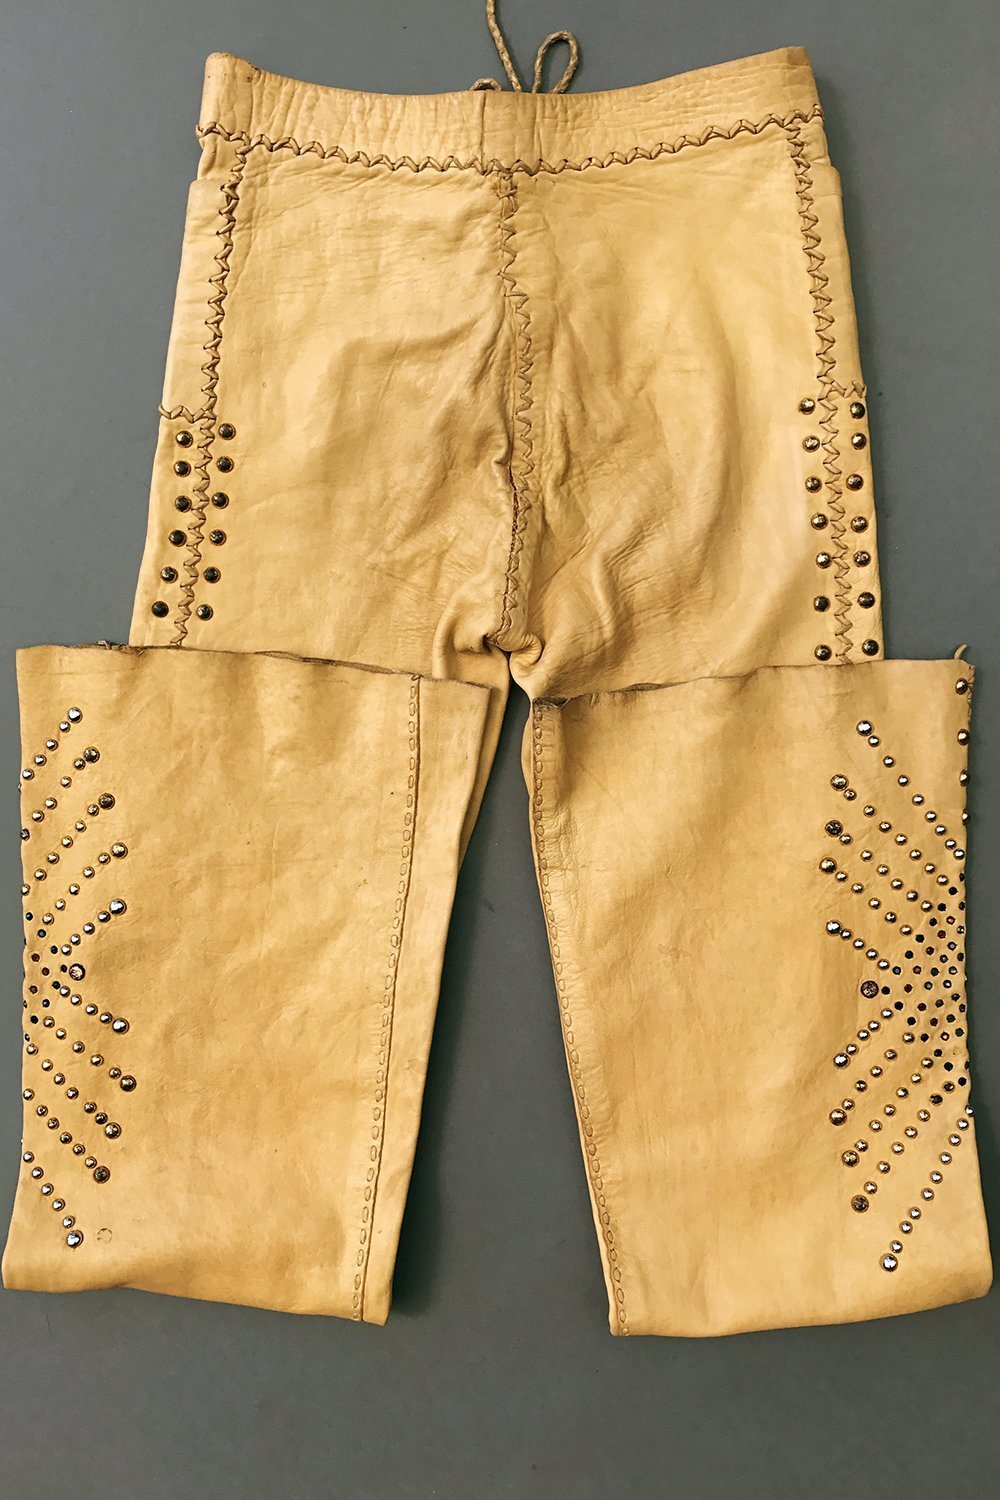 Extremely Rare ? 1960s OOAK Studded North Beach Leather Whipstitched Leather Pants, bottoms, BACKBITE